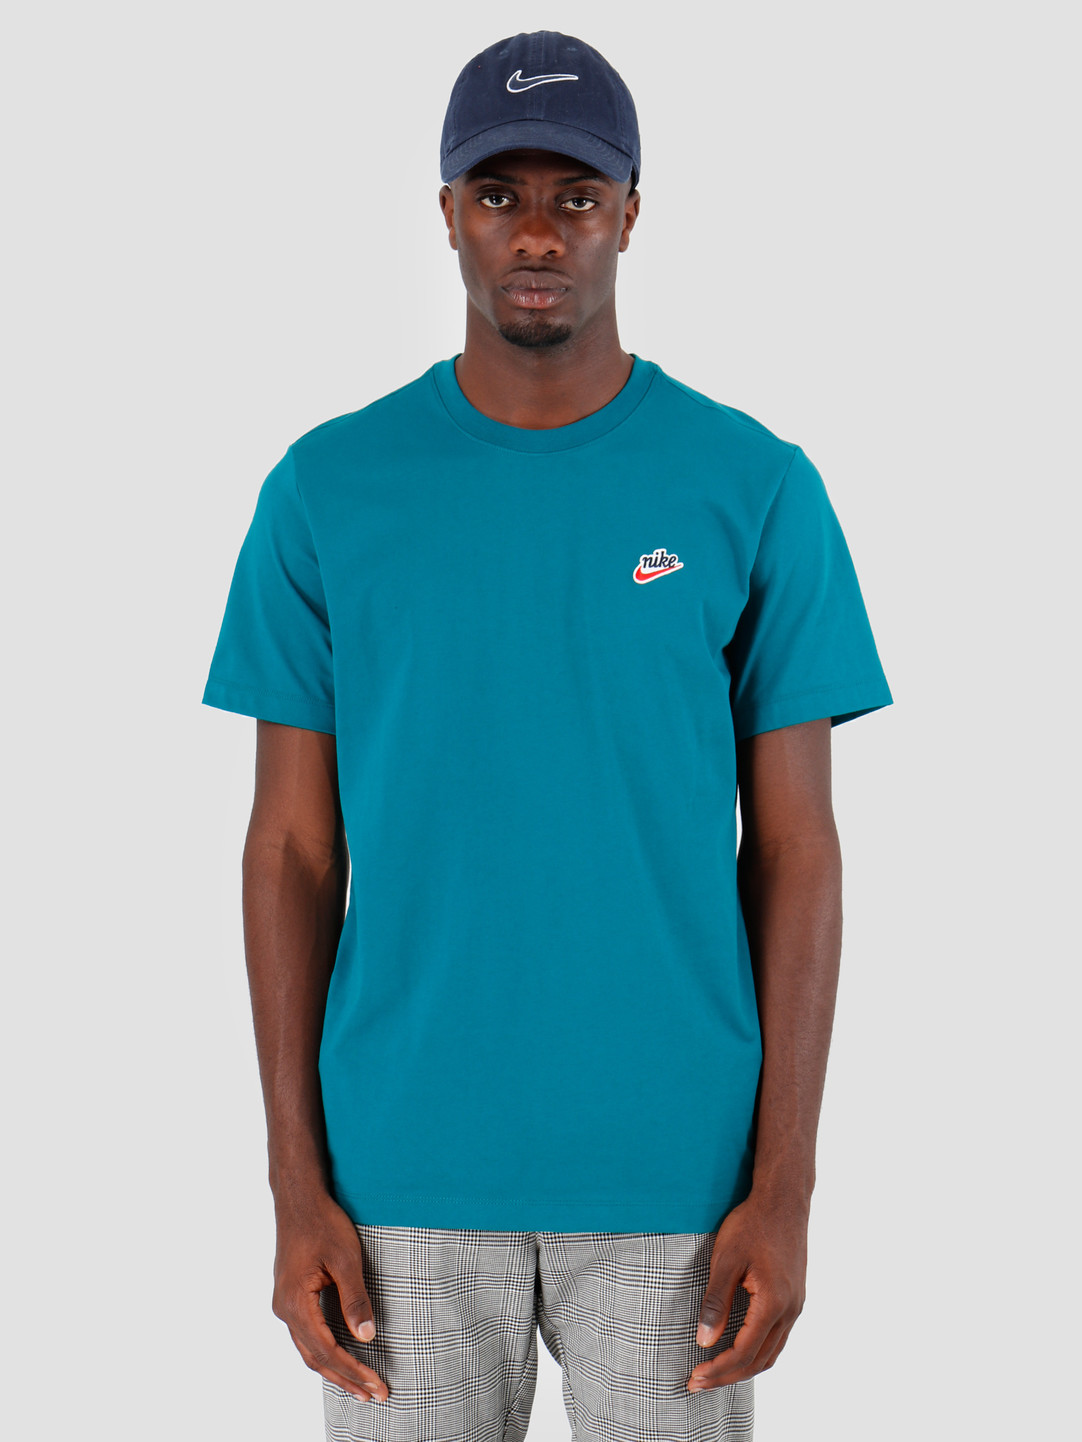 the best uk cheap sale classic styles Nike NSW T-Shirt Heritage Geode Teal BV7882-381